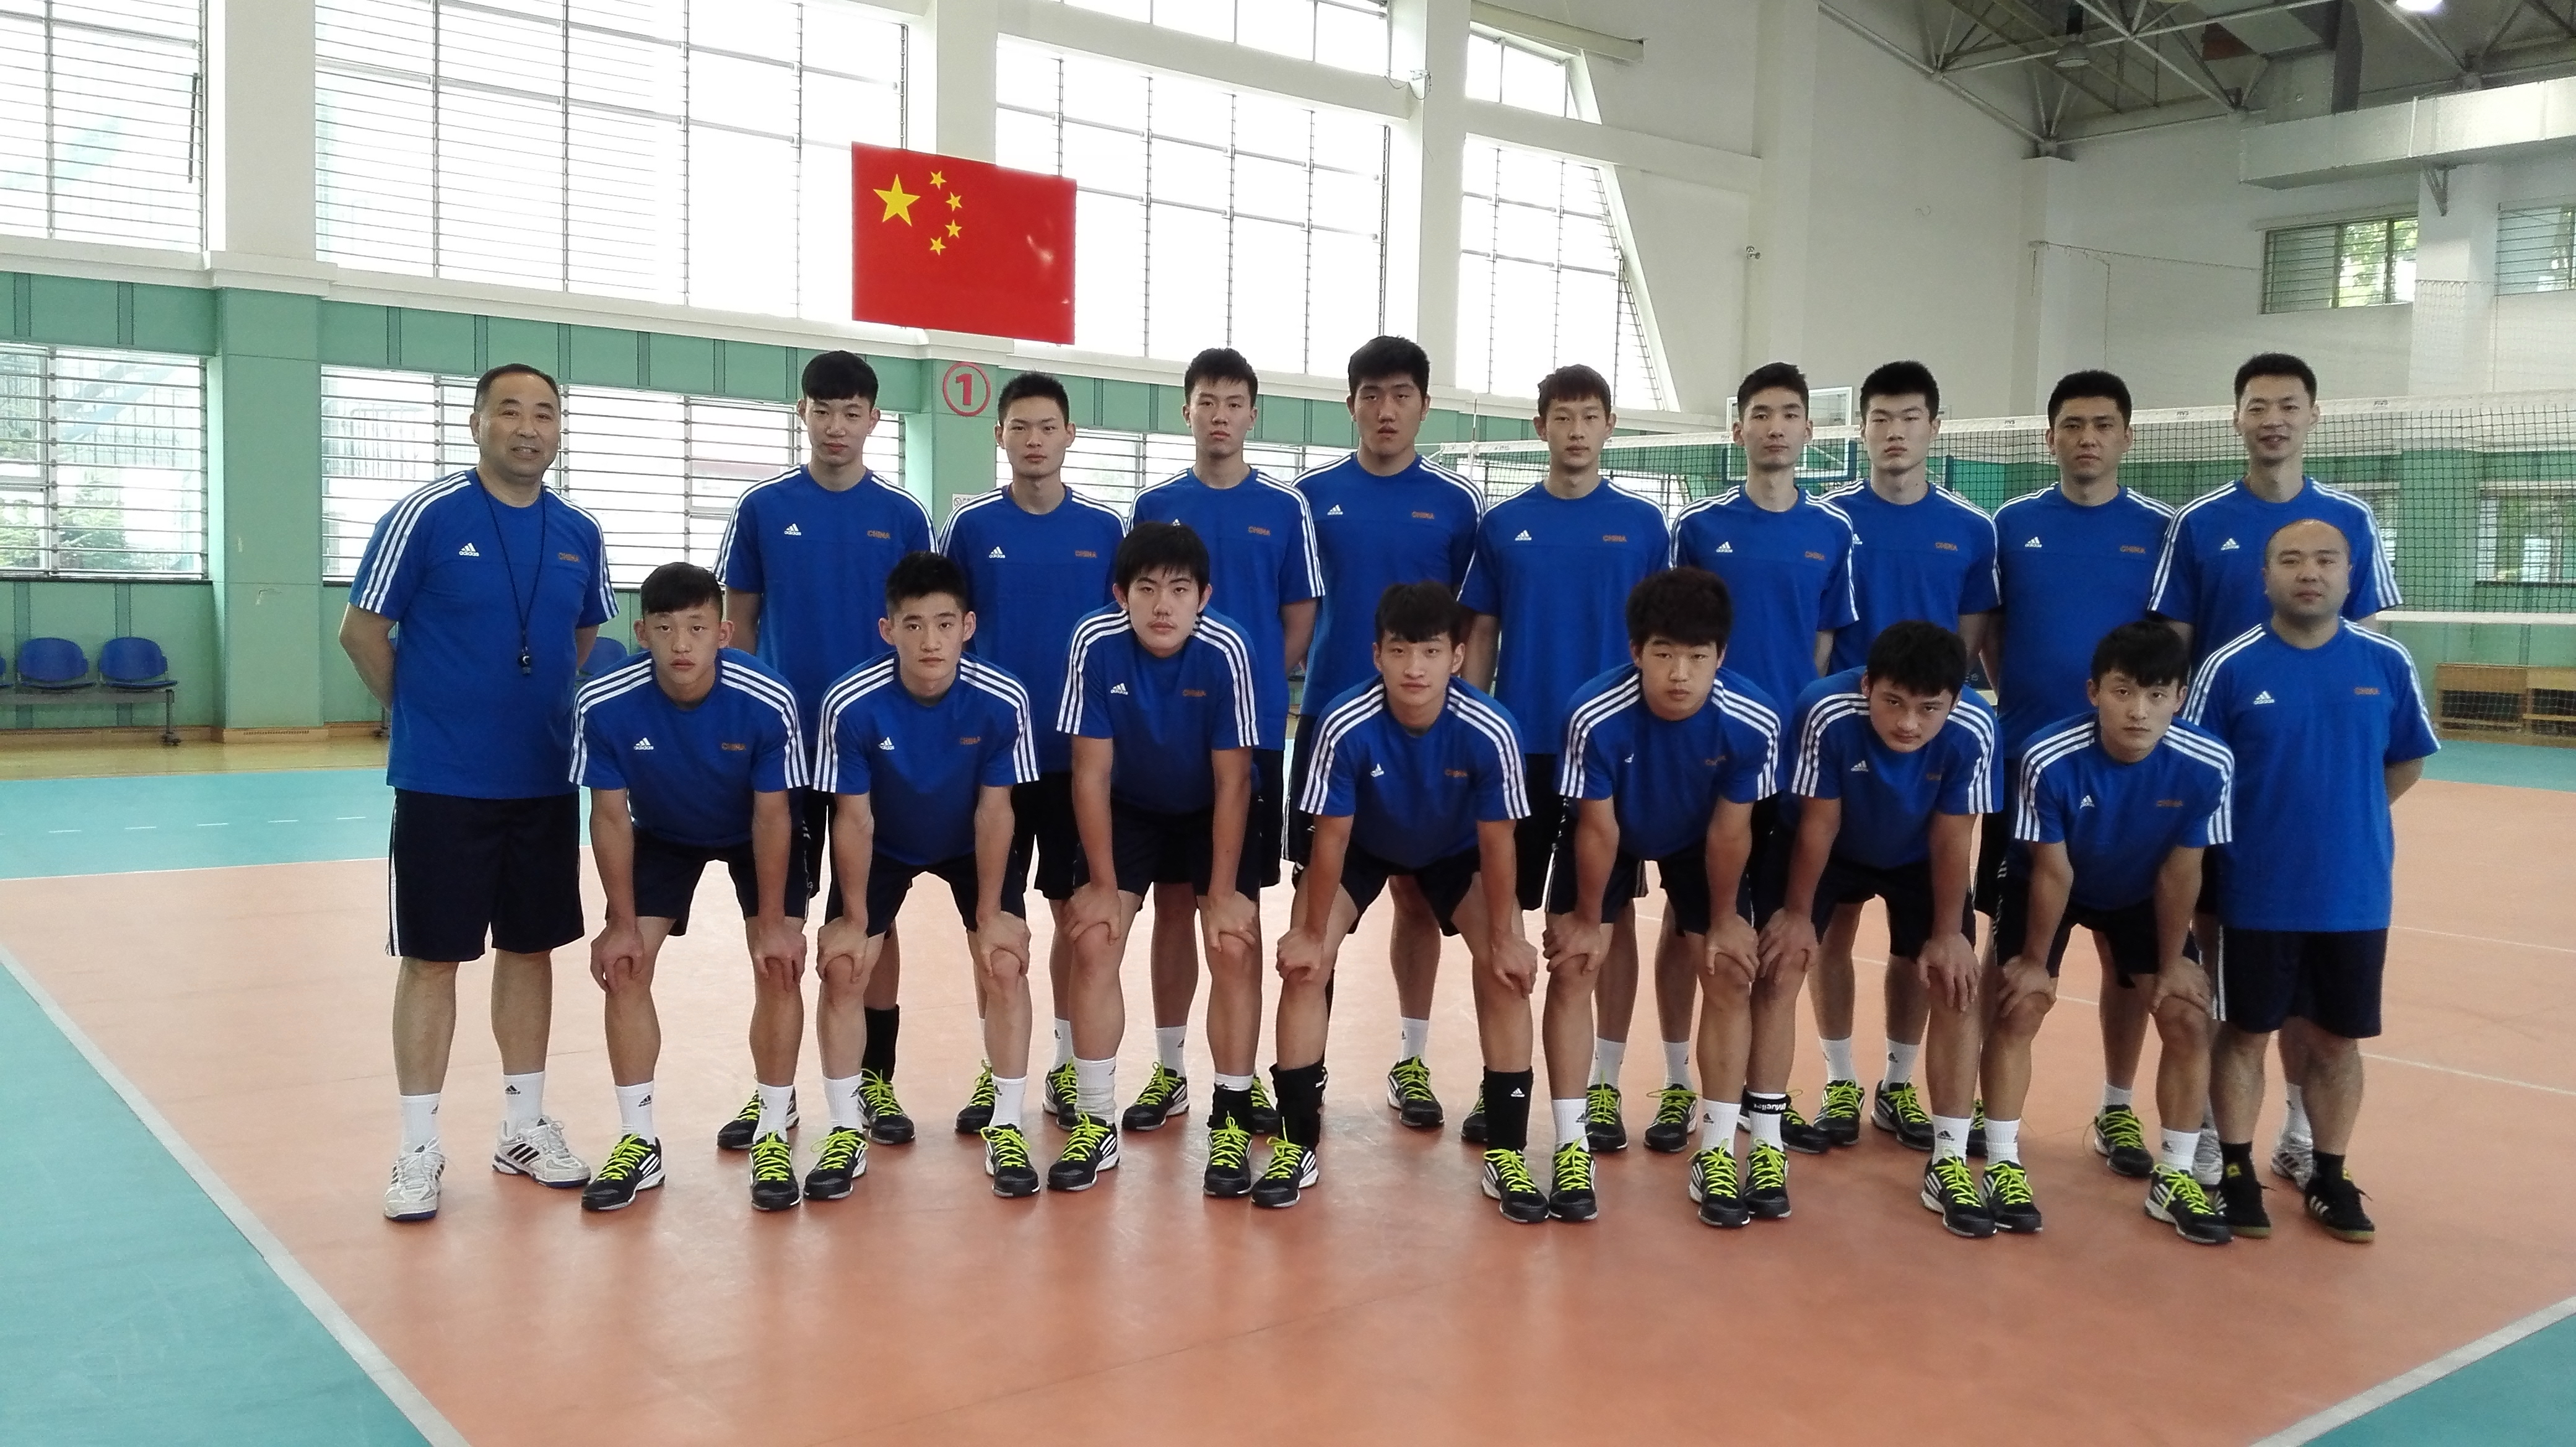 Overview China Fivb Volleyball Boys U19 World Championship 2015 # Bois En Chaene